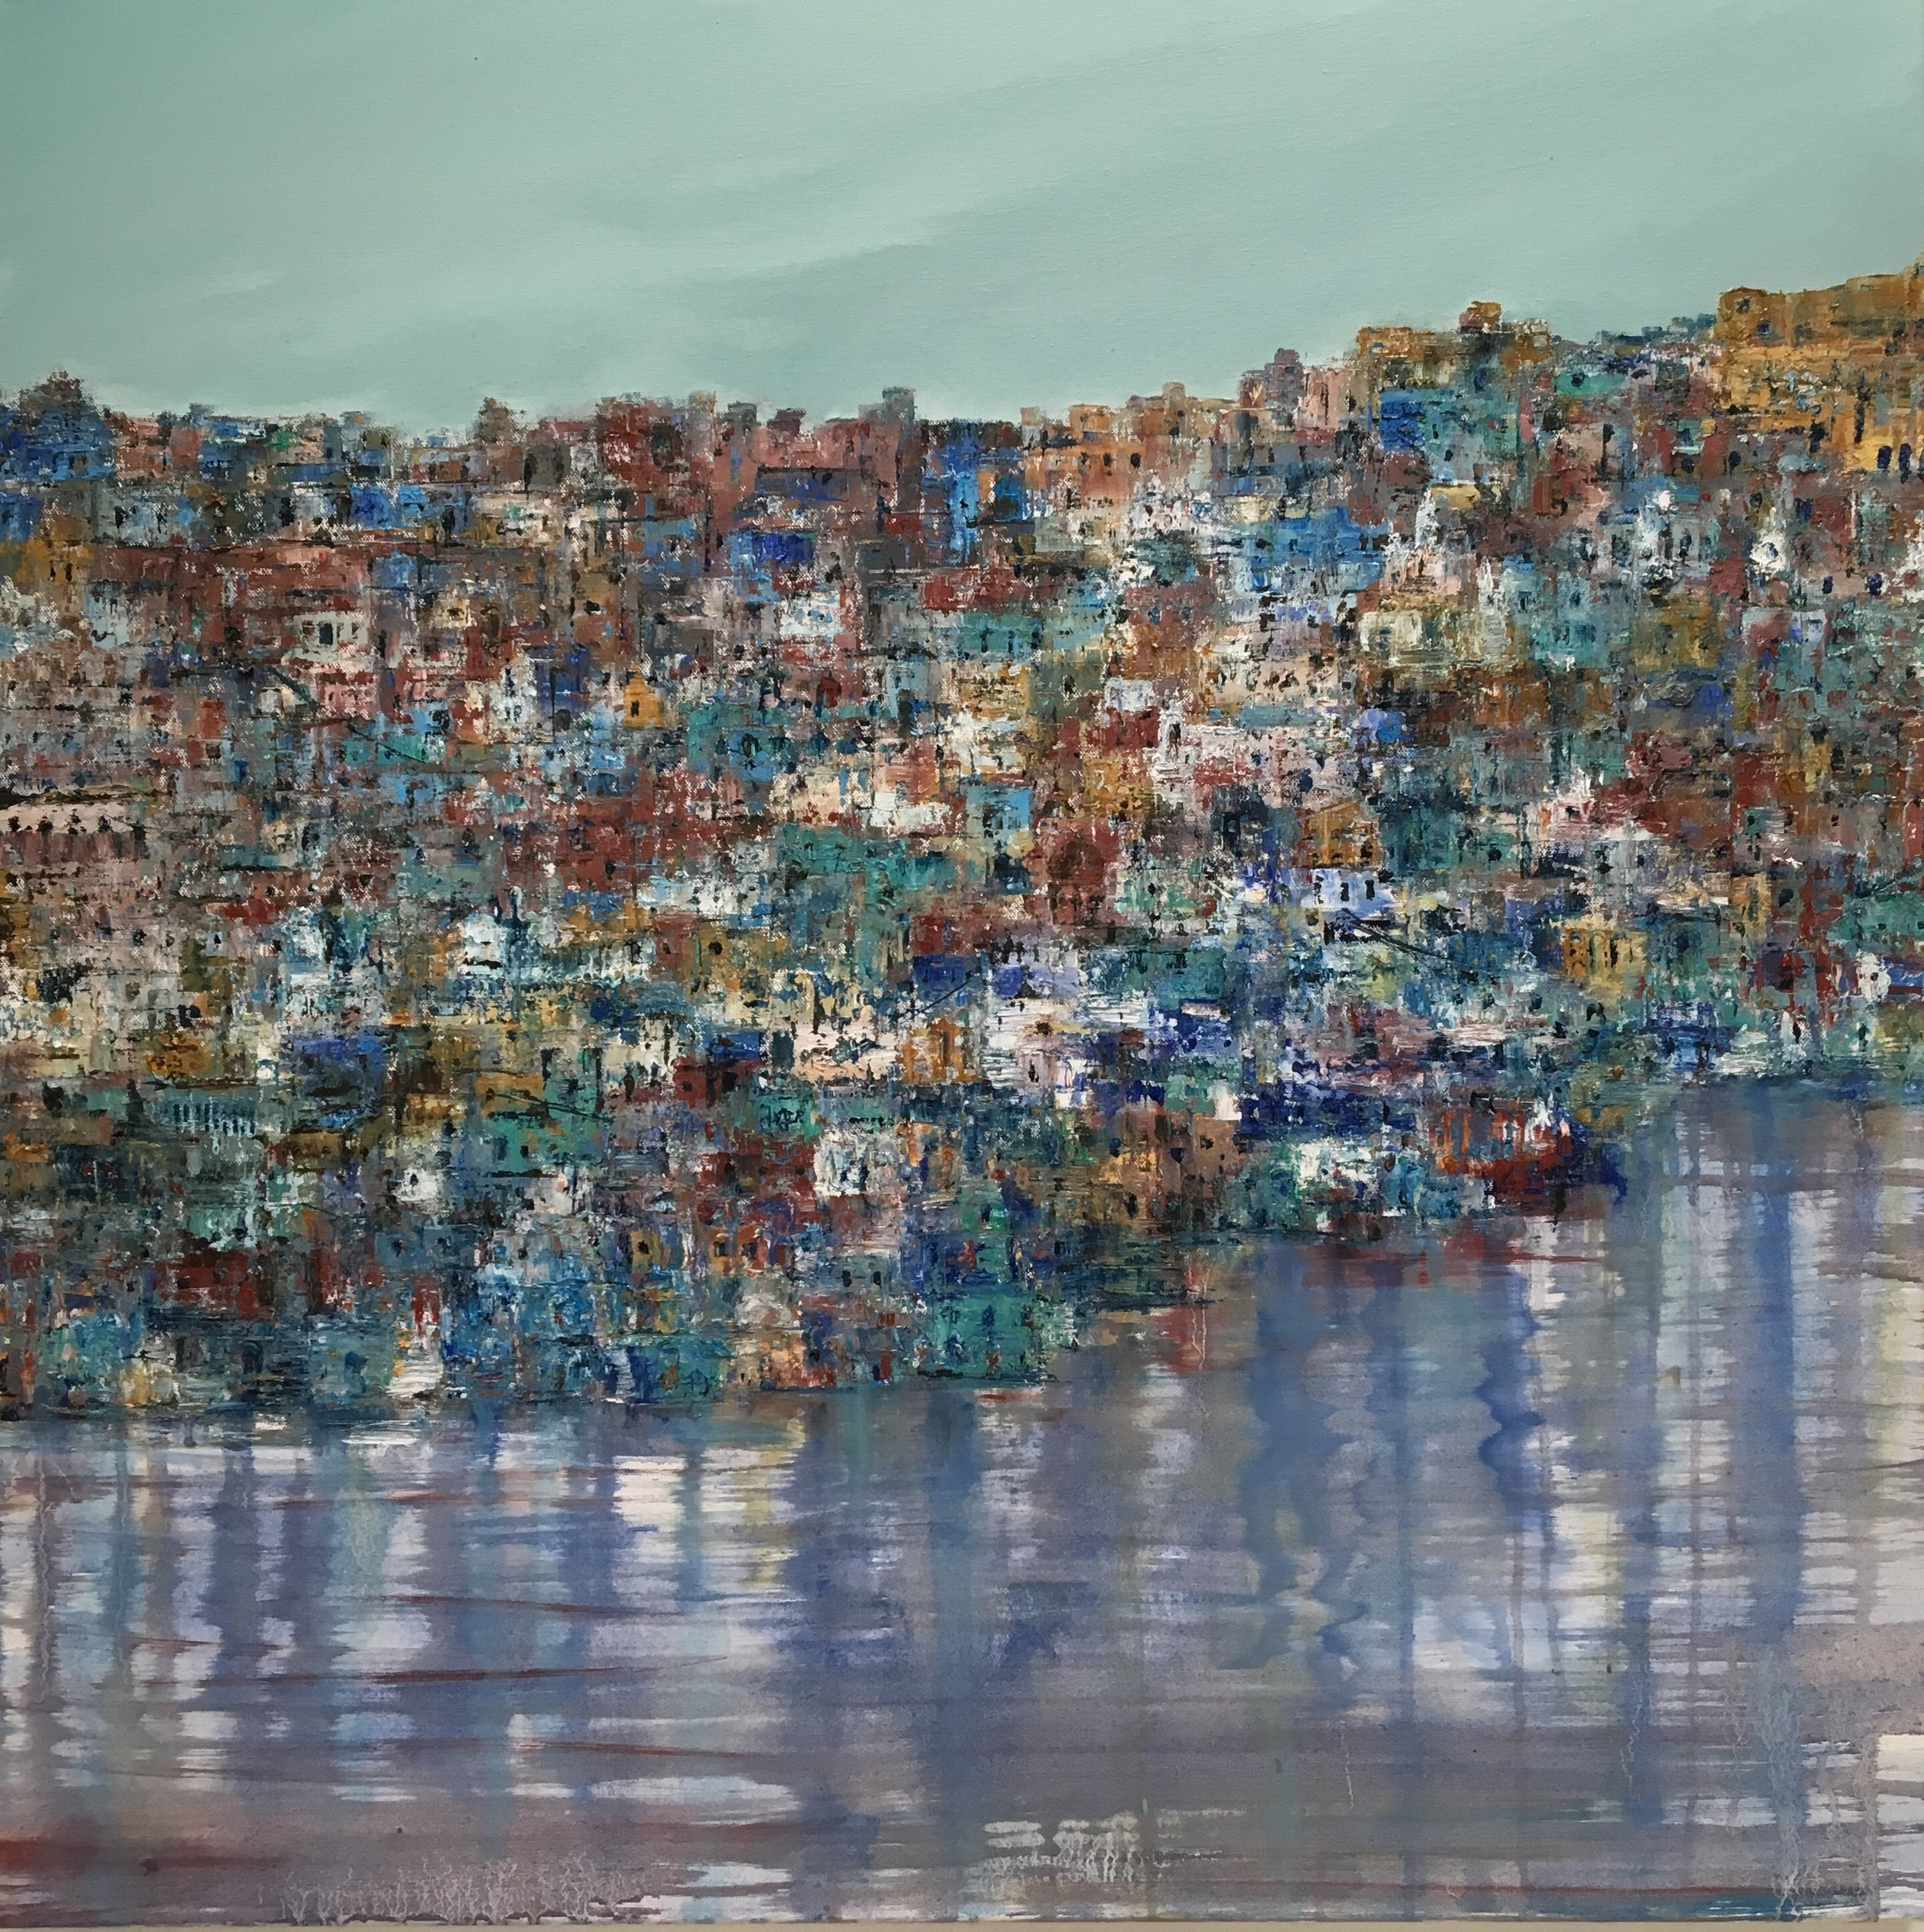 Jodhpur Blues, oil, 30 * 30 inches